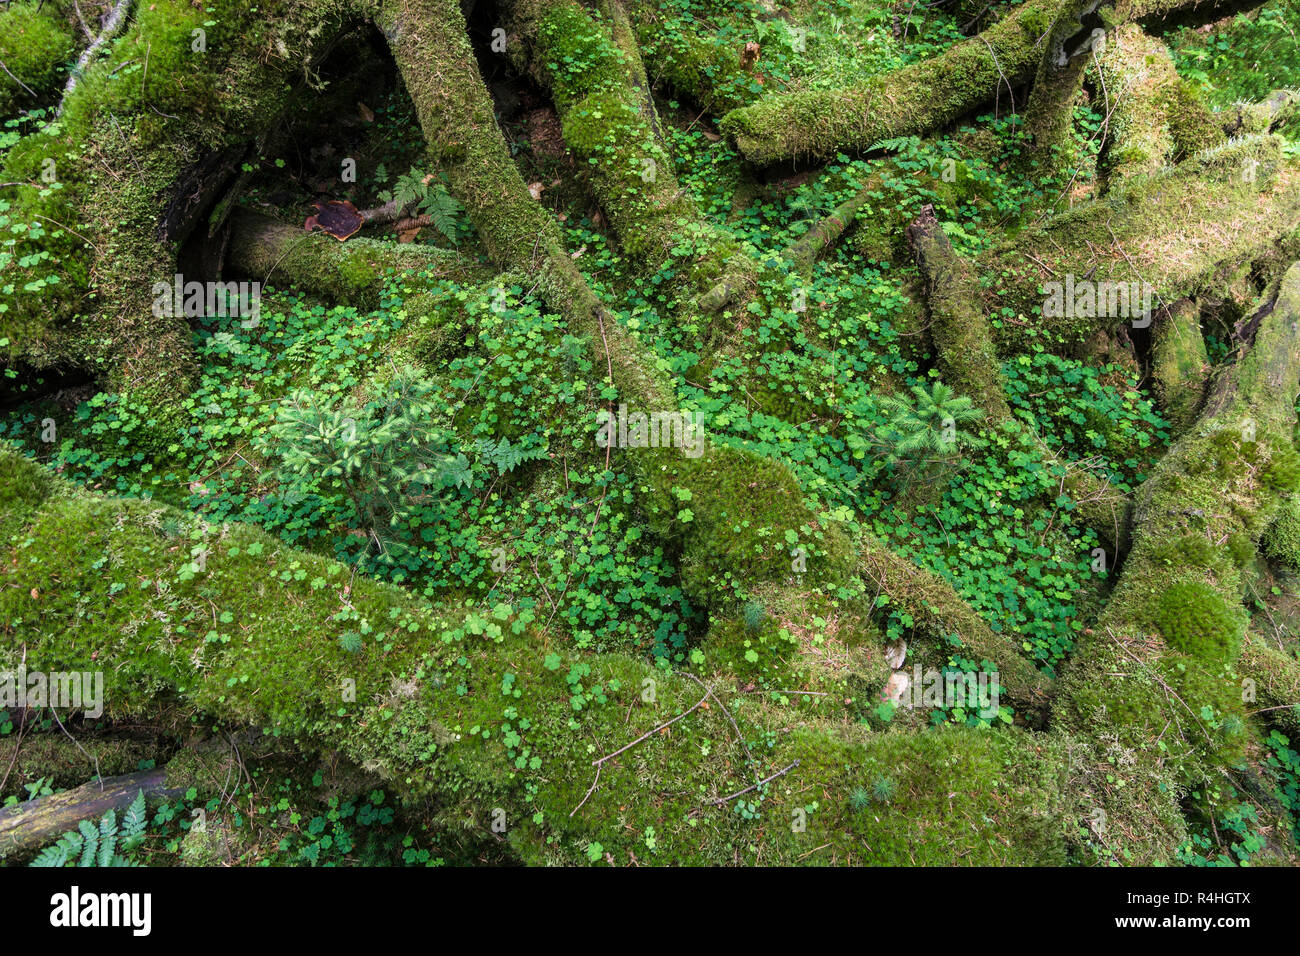 Totholzbiotop, Young growth on mustiness wood, Junger Bewuchs auf Moderholz - Stock Image